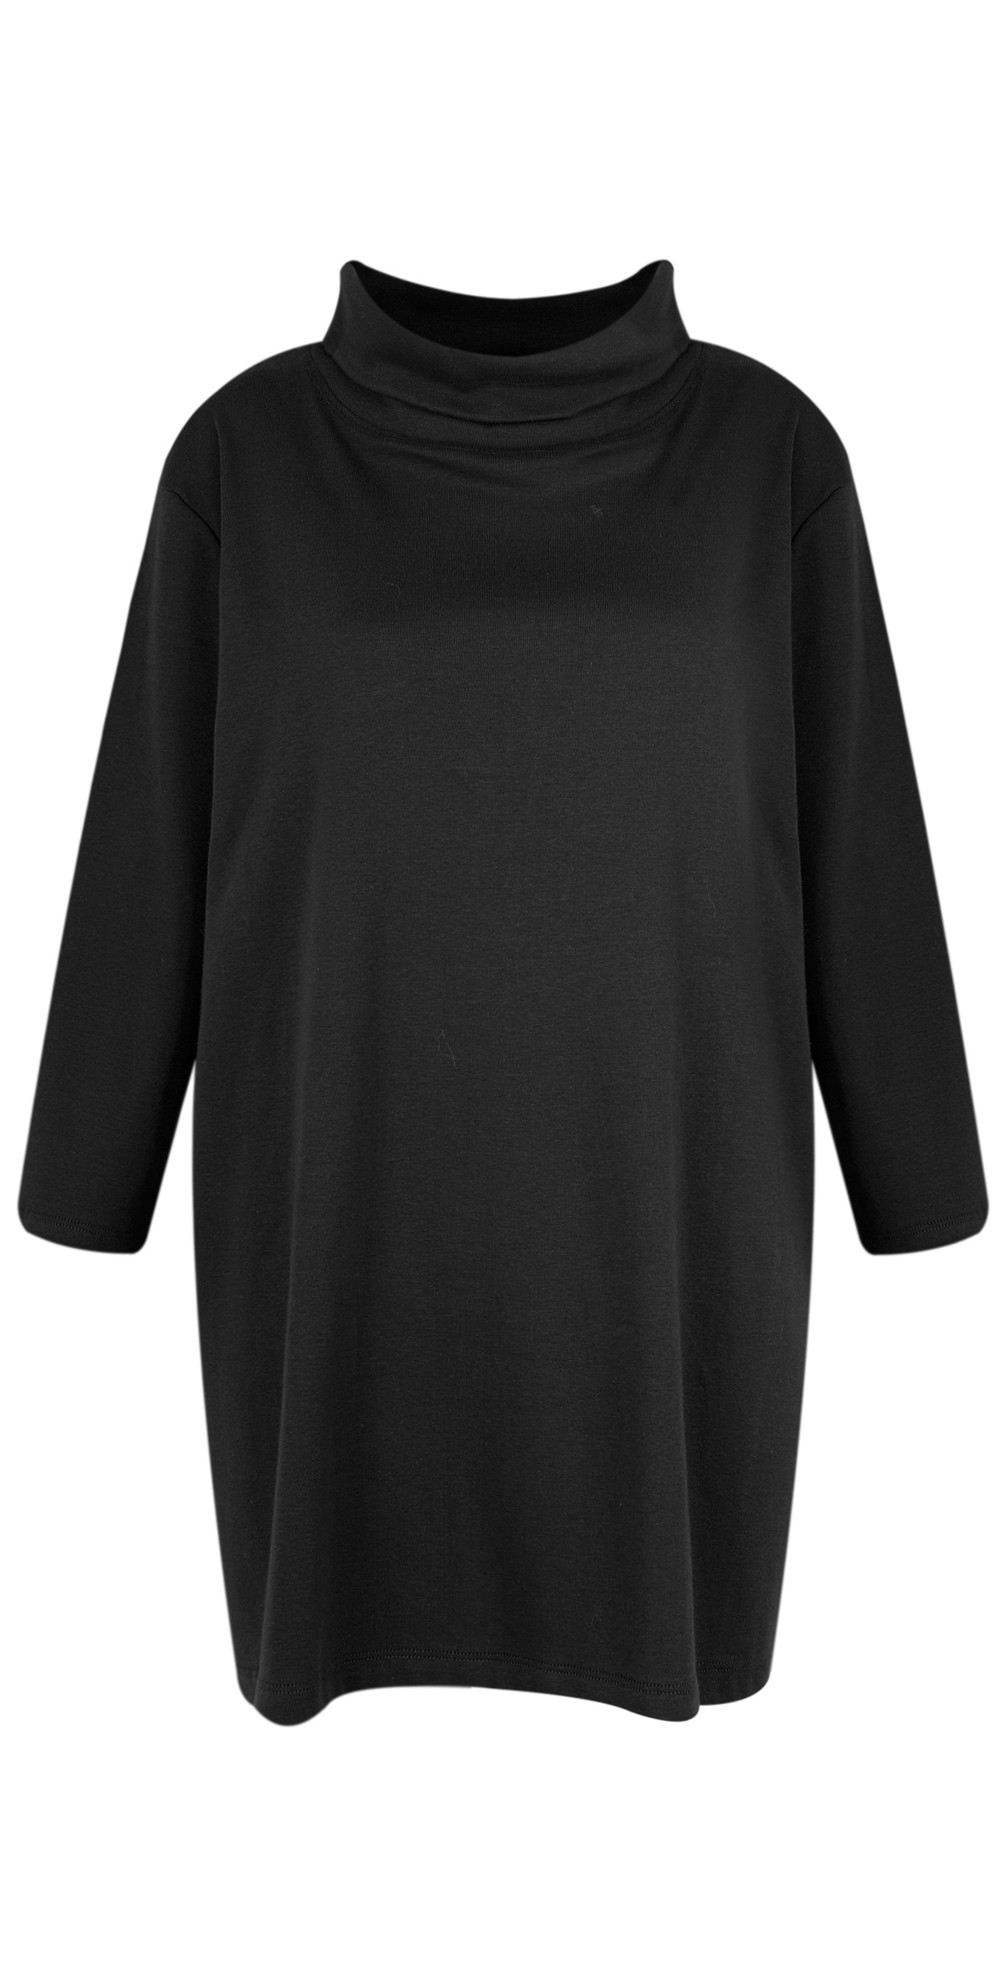 Clara Easyfit Organic Cotton Roll Neck Top main image